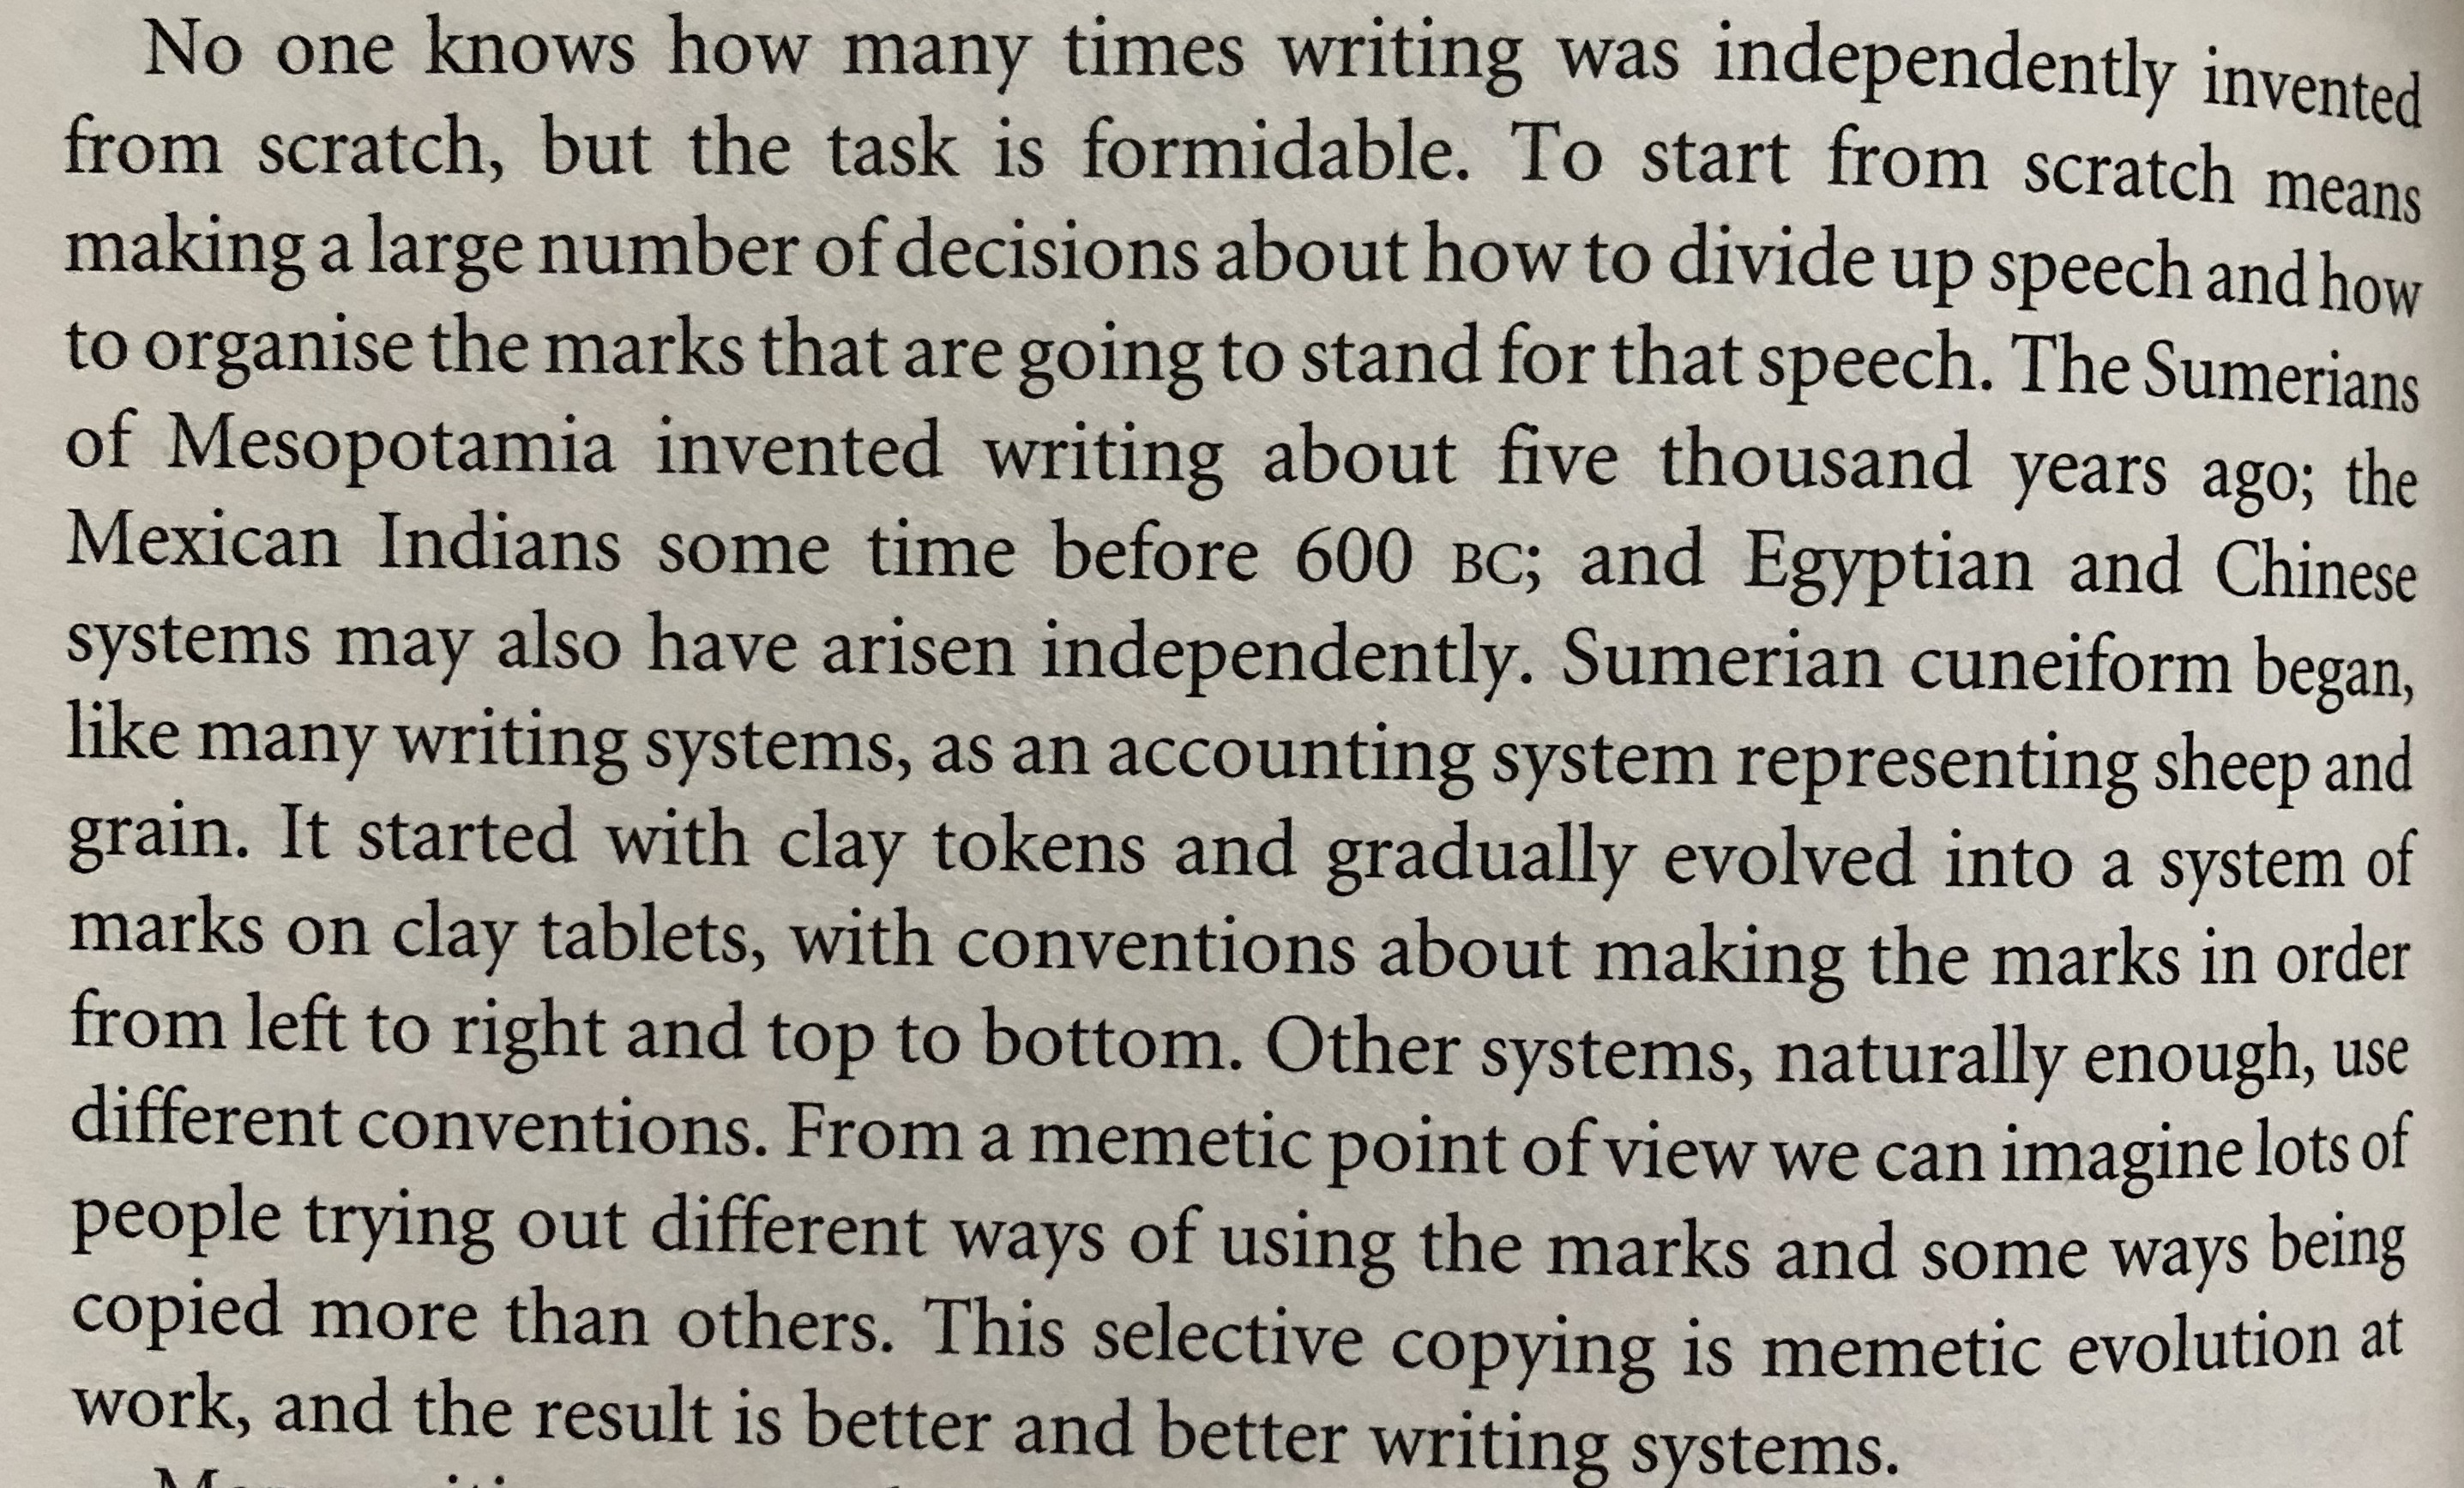 Memetic evolution of writing systems